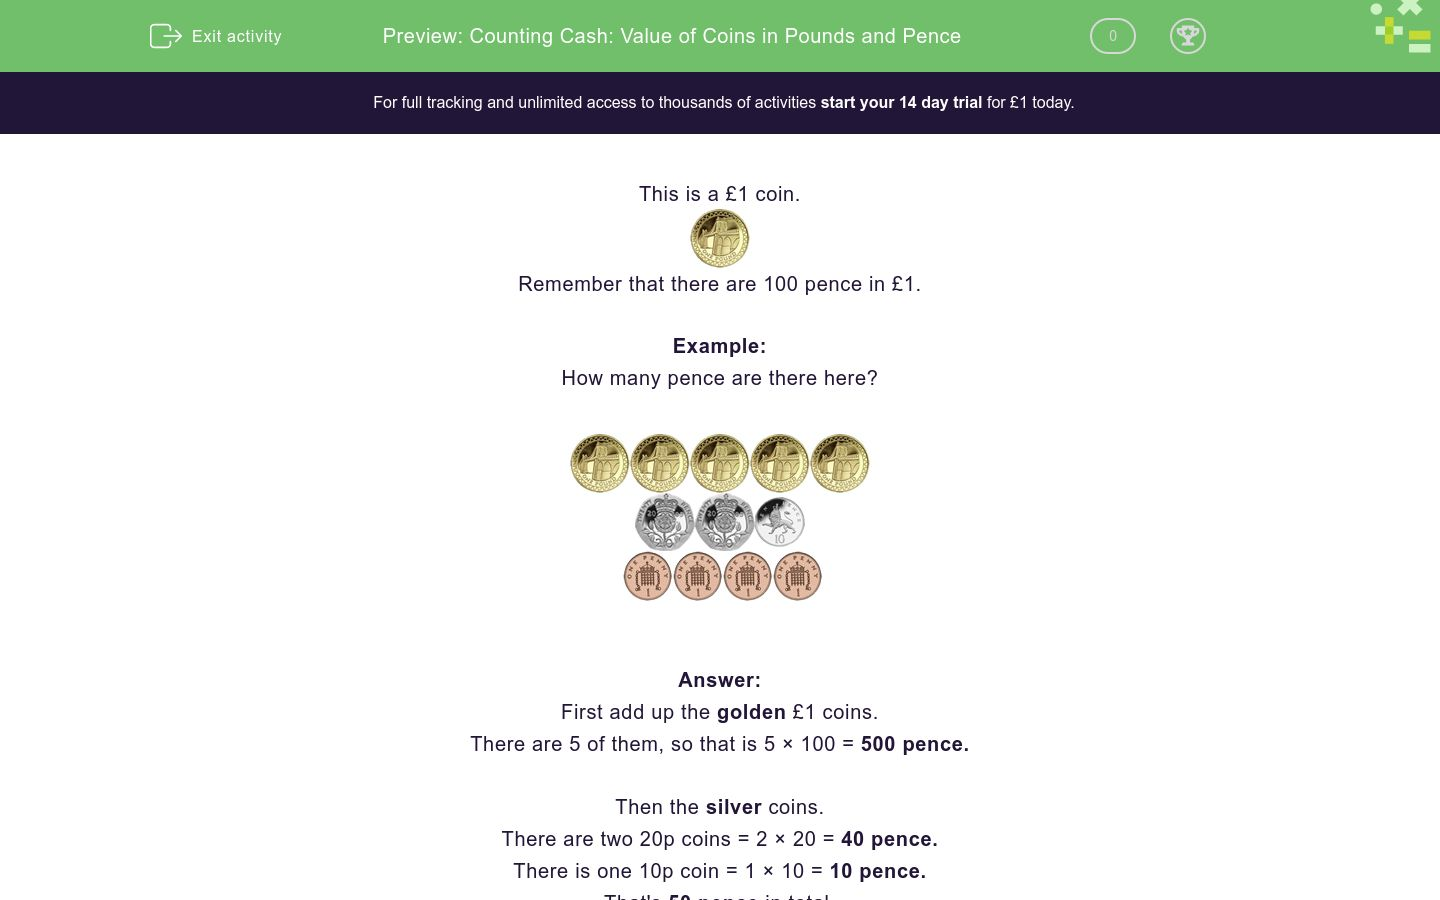 'Counting Cash: Value of Coins in Pounds and Pence' worksheet